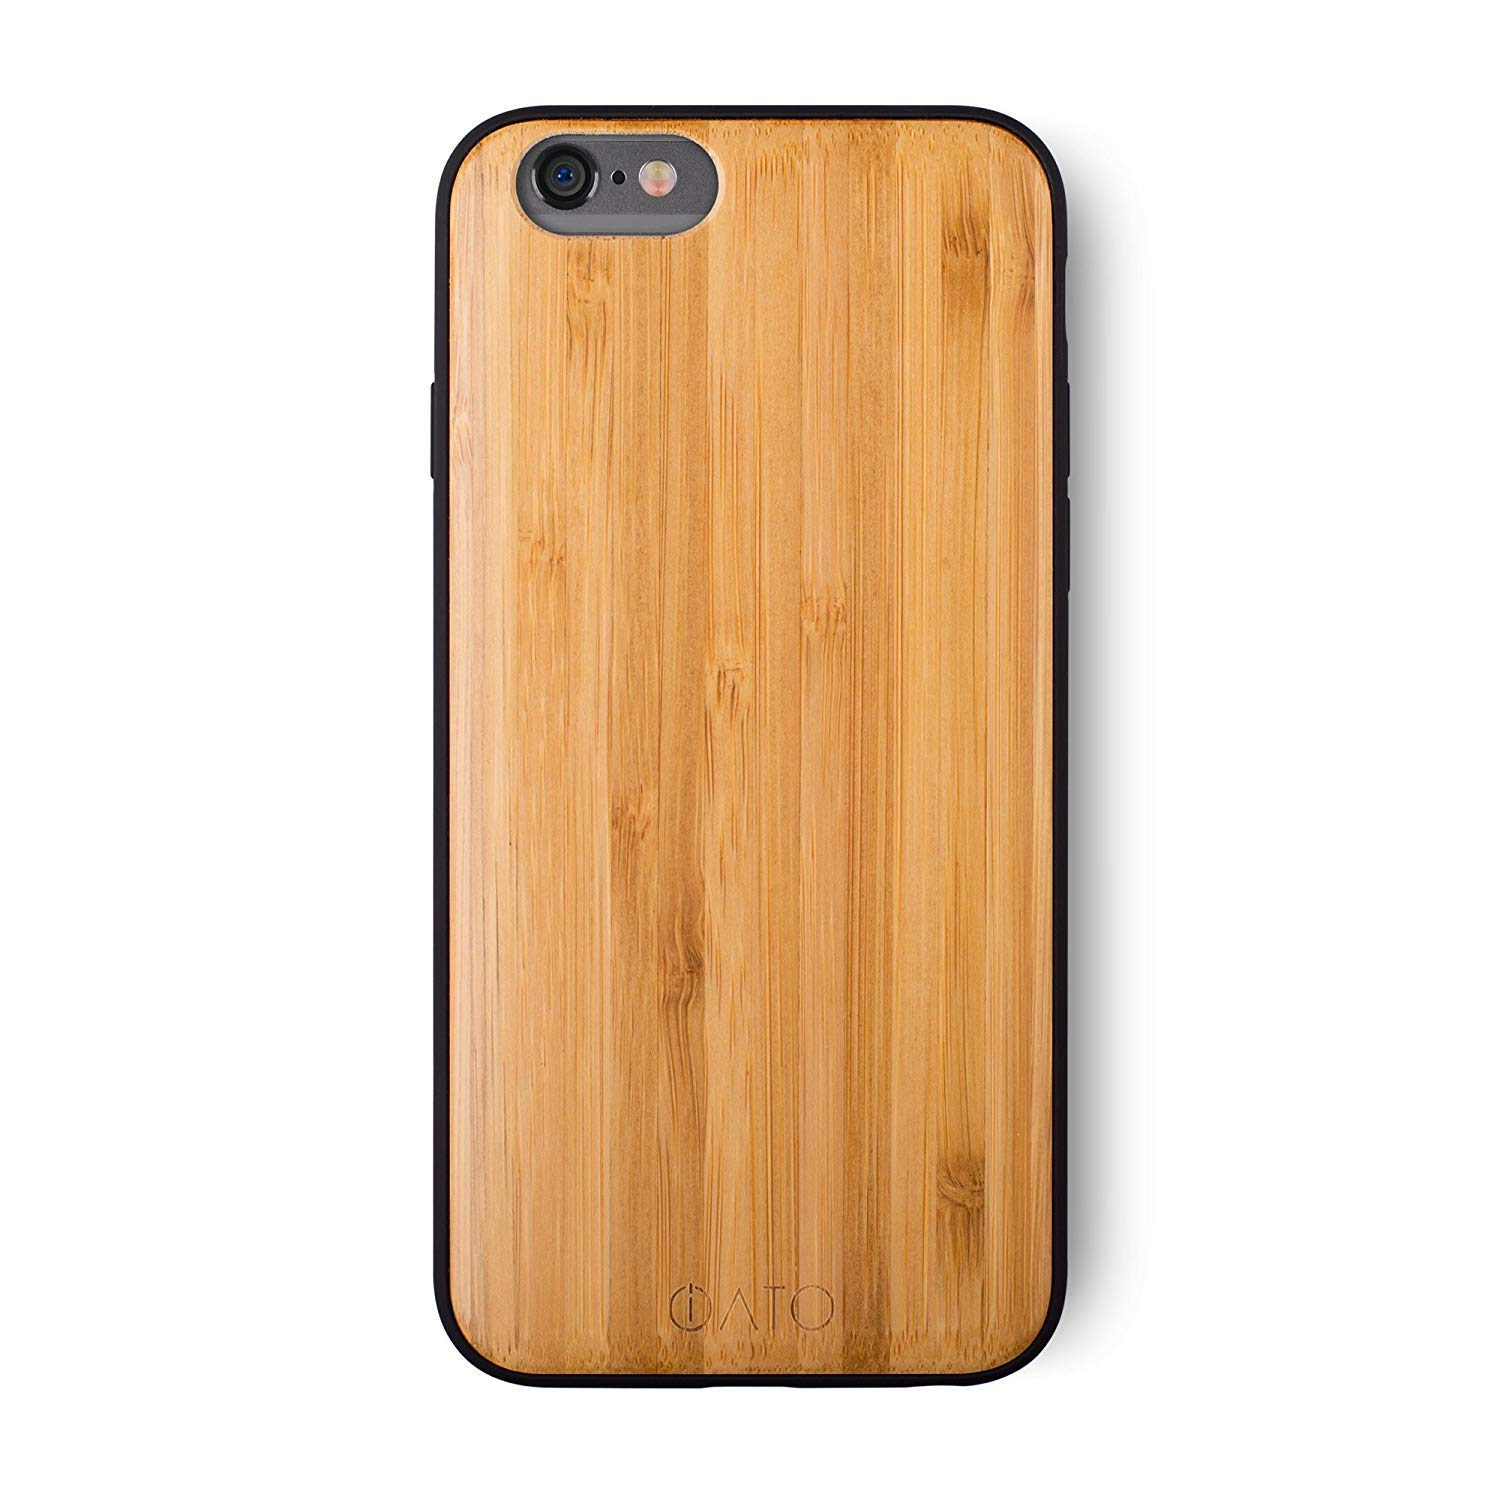 promo code 9e4cf 0674b iATO iPhone 6 Plus / 6s Plus Wooden Case - Real Bamboo Wood Grain Premium  Protective Shockproof Slim Back Cover - Unique, Stylish & Classy Thin Snap  ...